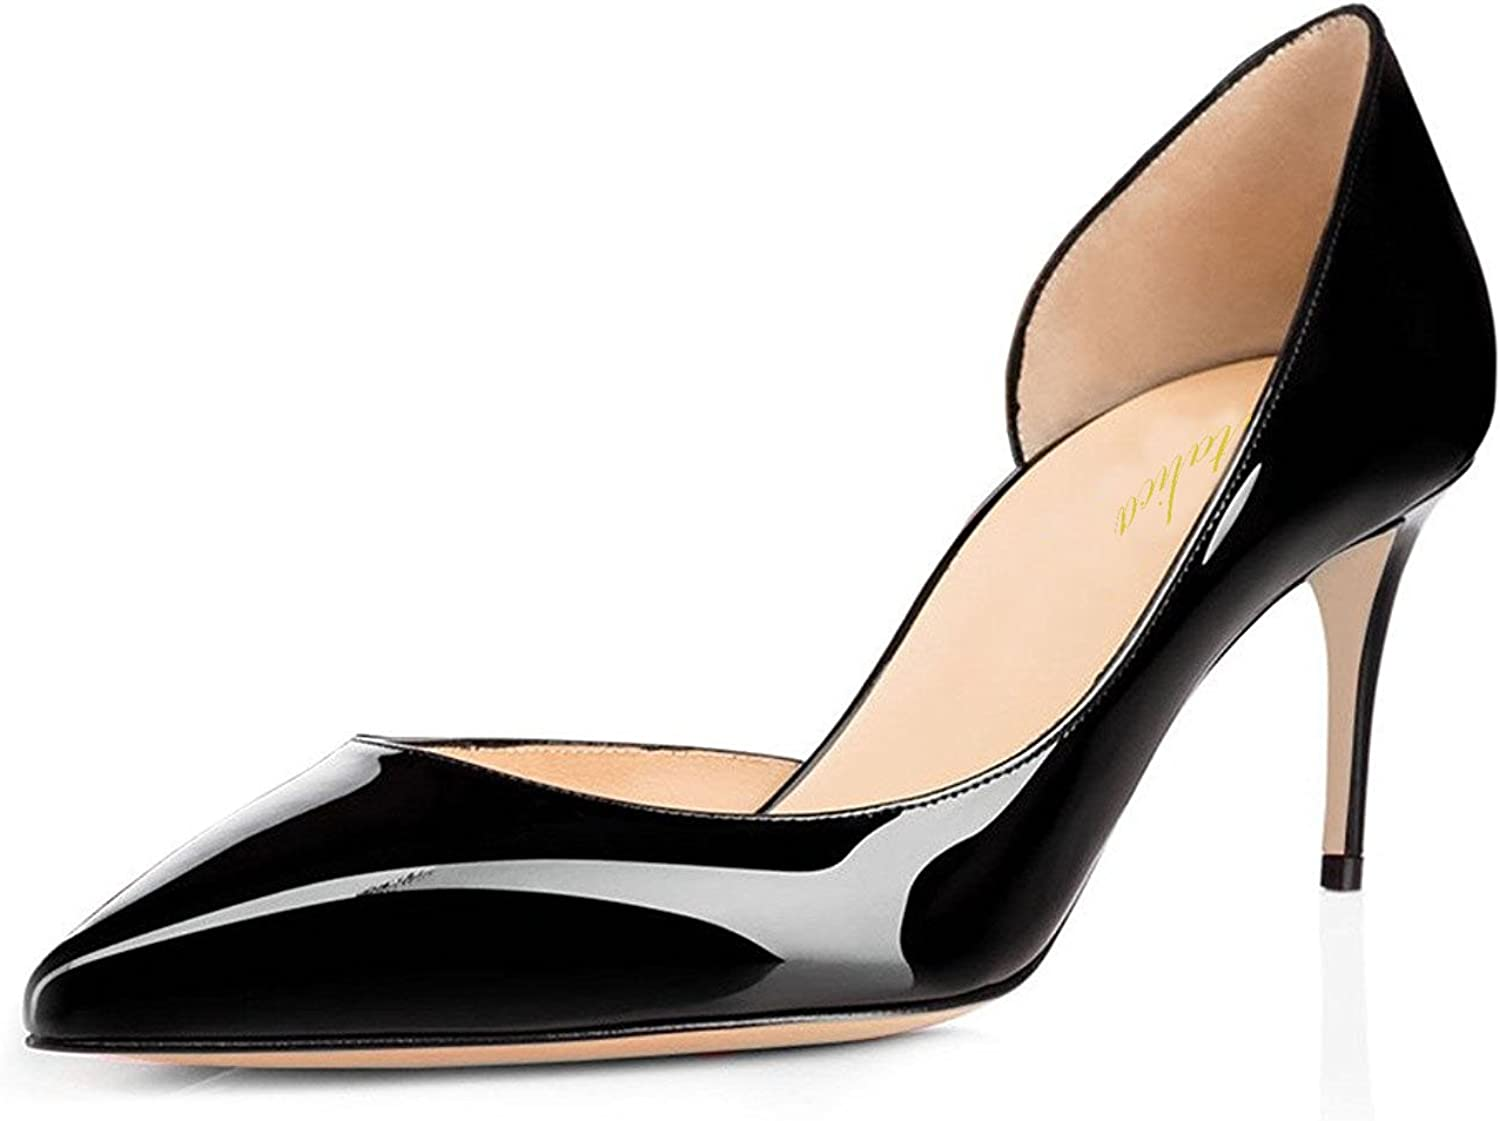 Lutalica Women Sexy Pointed Toe shoes Kitten Heel Summer Dress Party Pumps Size 5.5-12 US